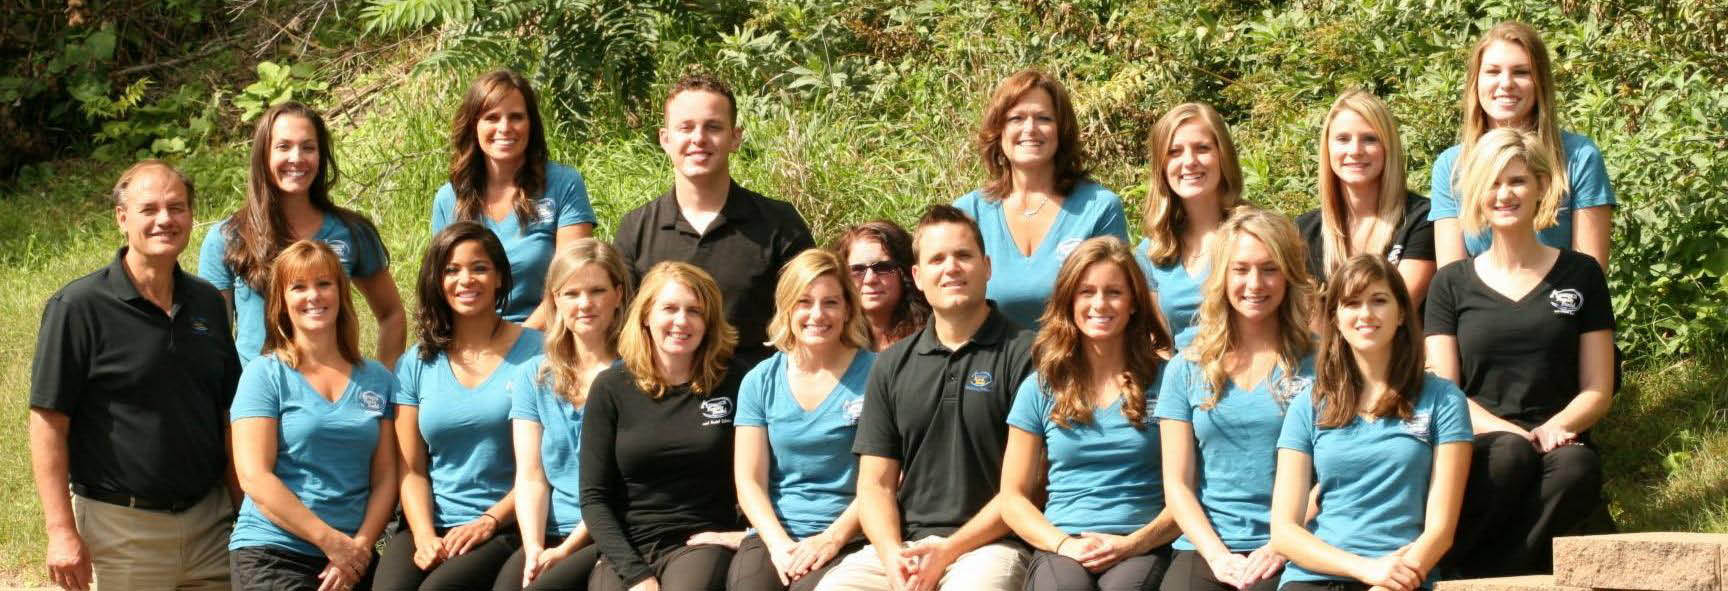 Advance Family Dental and Facial Esthetics staff in Vadnais Heights, MN